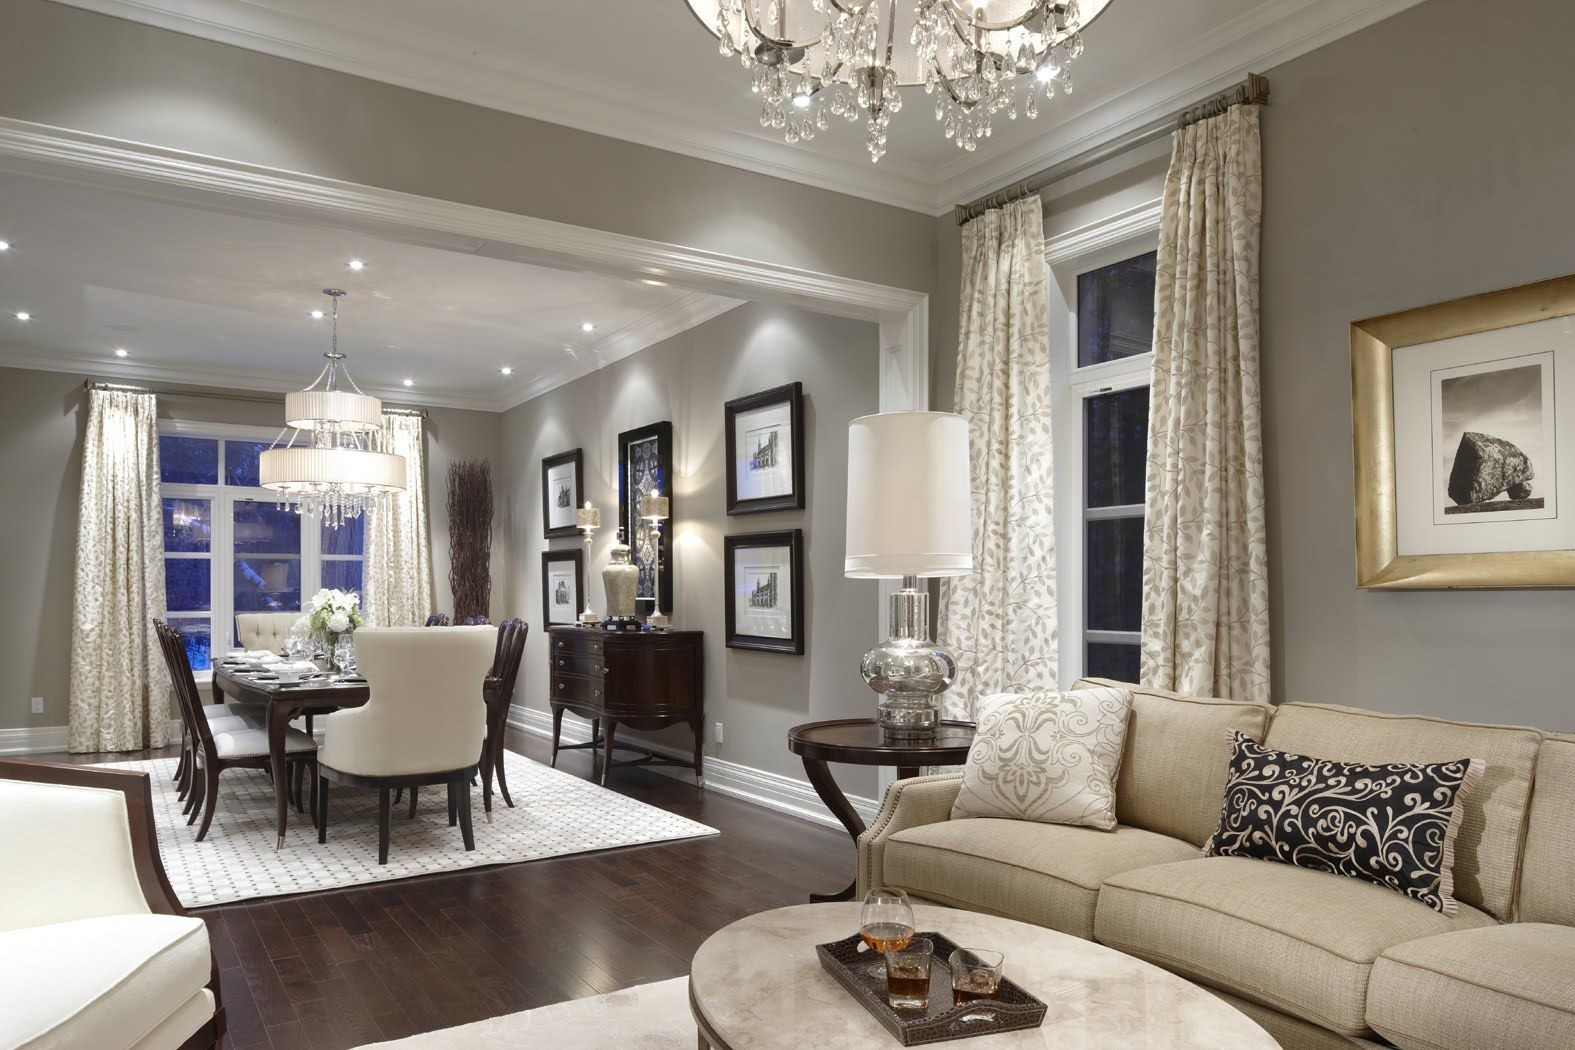 Cheap Hardwood Flooring Charlotte Nc Of Benjamin Moore Colors for Your Living Room Decor Livingroom Ideas Pertaining to A Traditional Living Room with Medium tone Hardwood Floors A Traditional Living Room with Medium tone Hardwood Floors